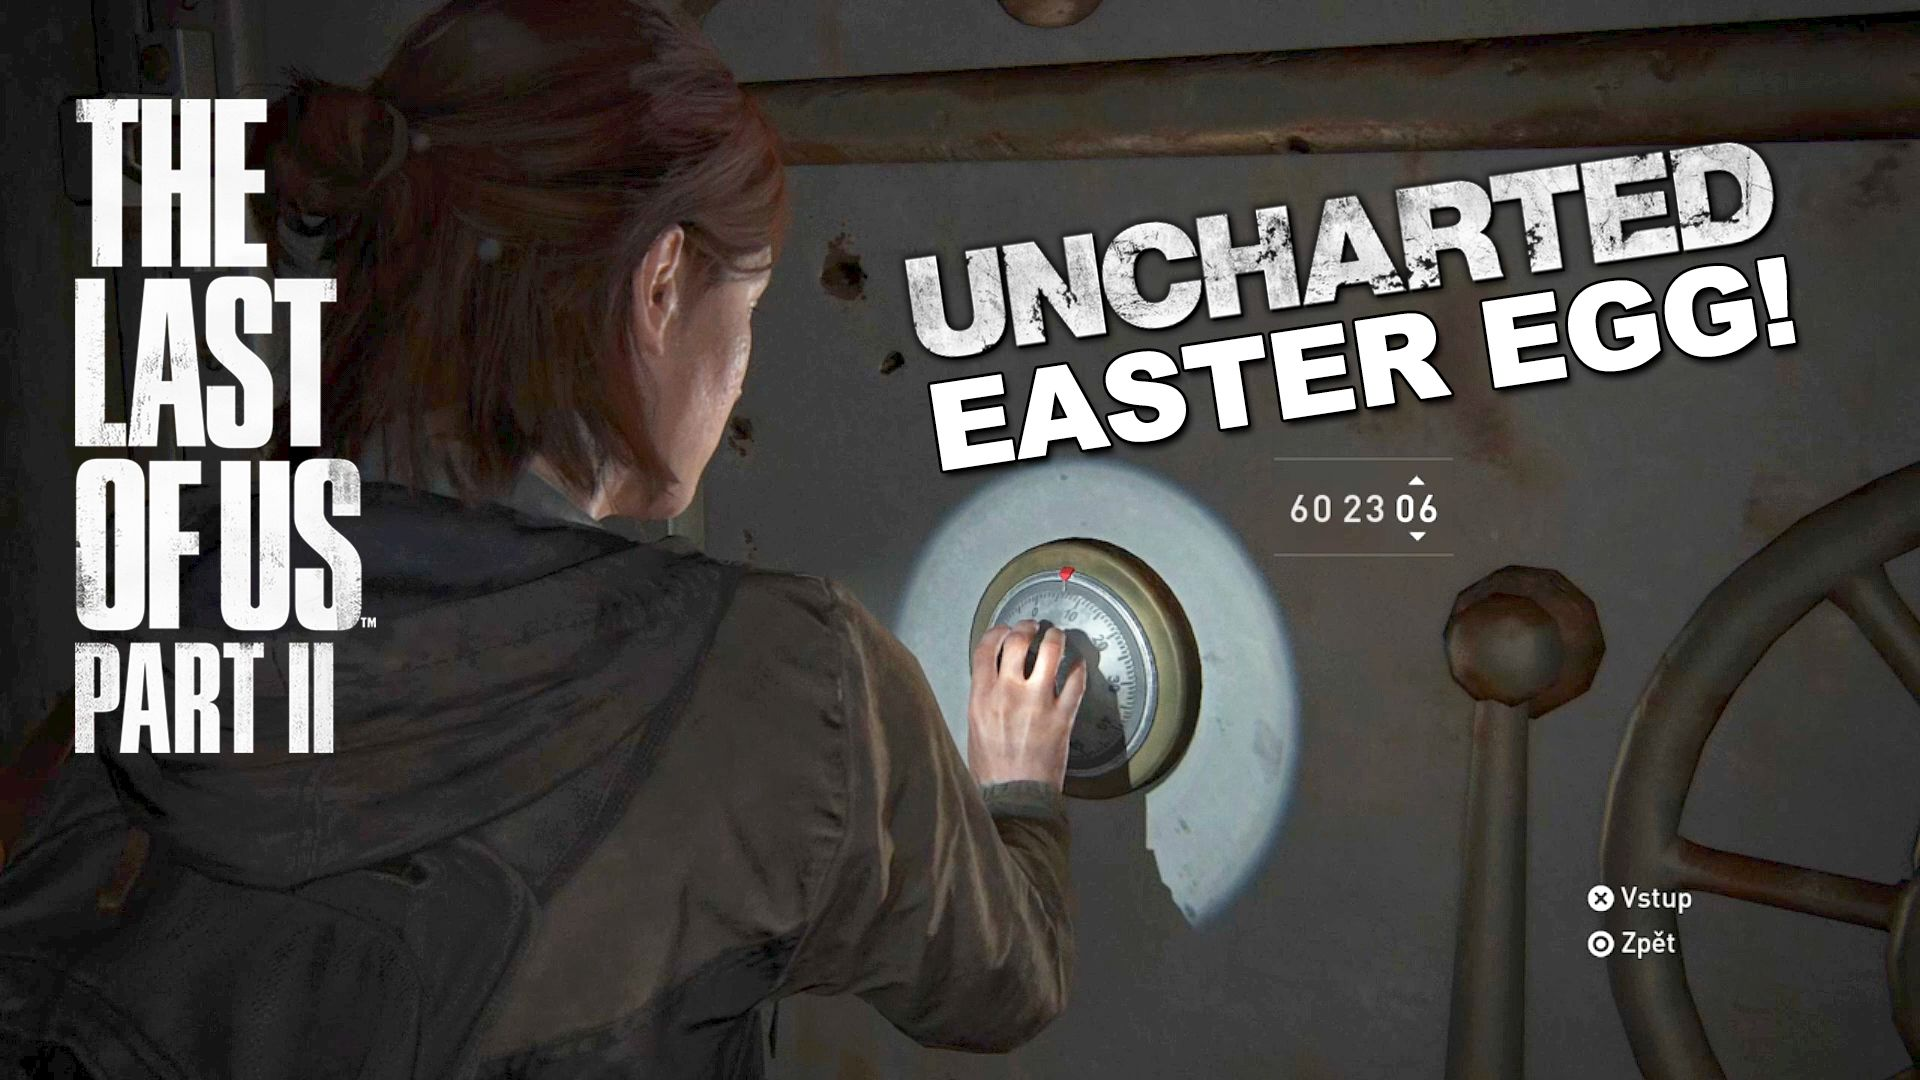 Uncharted Easter Egg in The Last of Us Part II